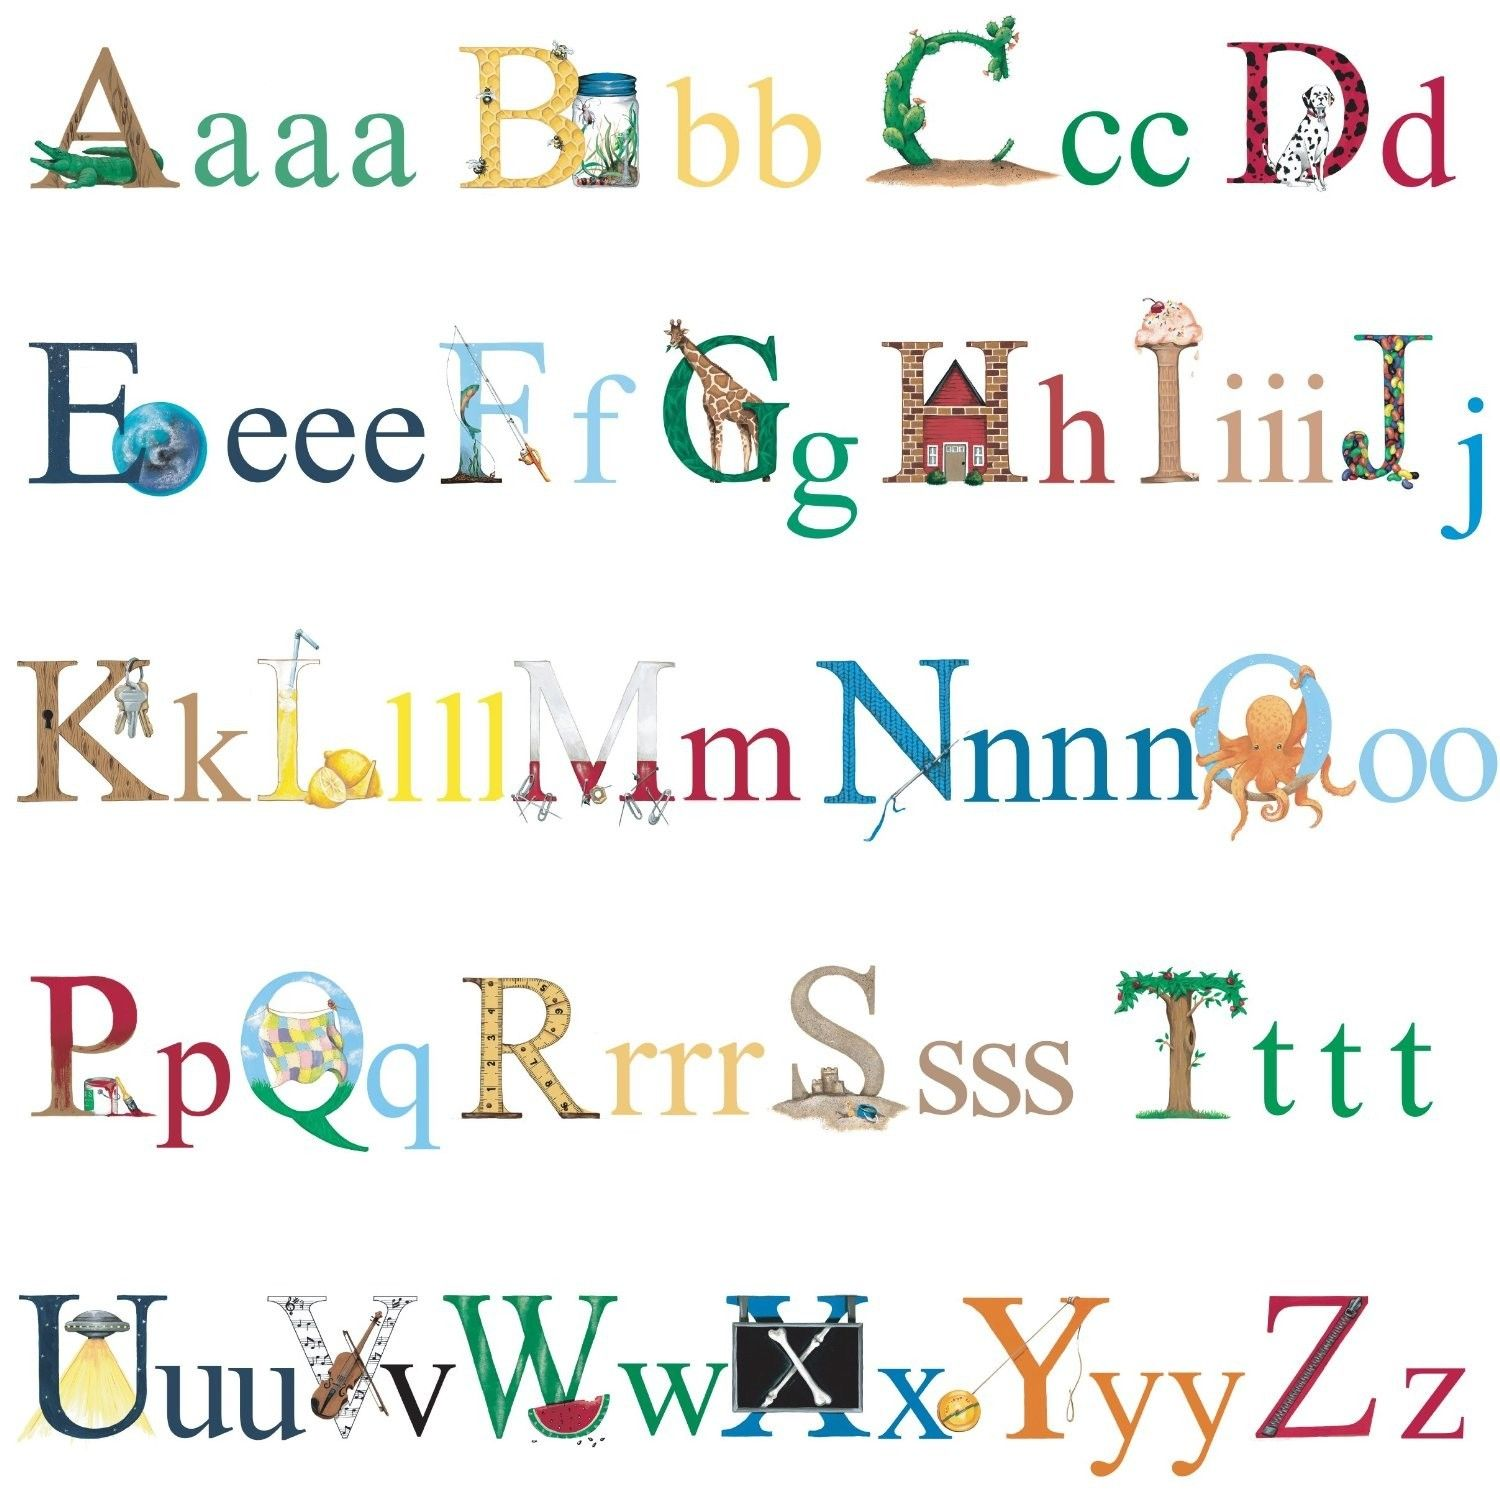 ALPHABET 73 BiG Wall Decals ABC School Kids Letters Room Decor Stickers Border